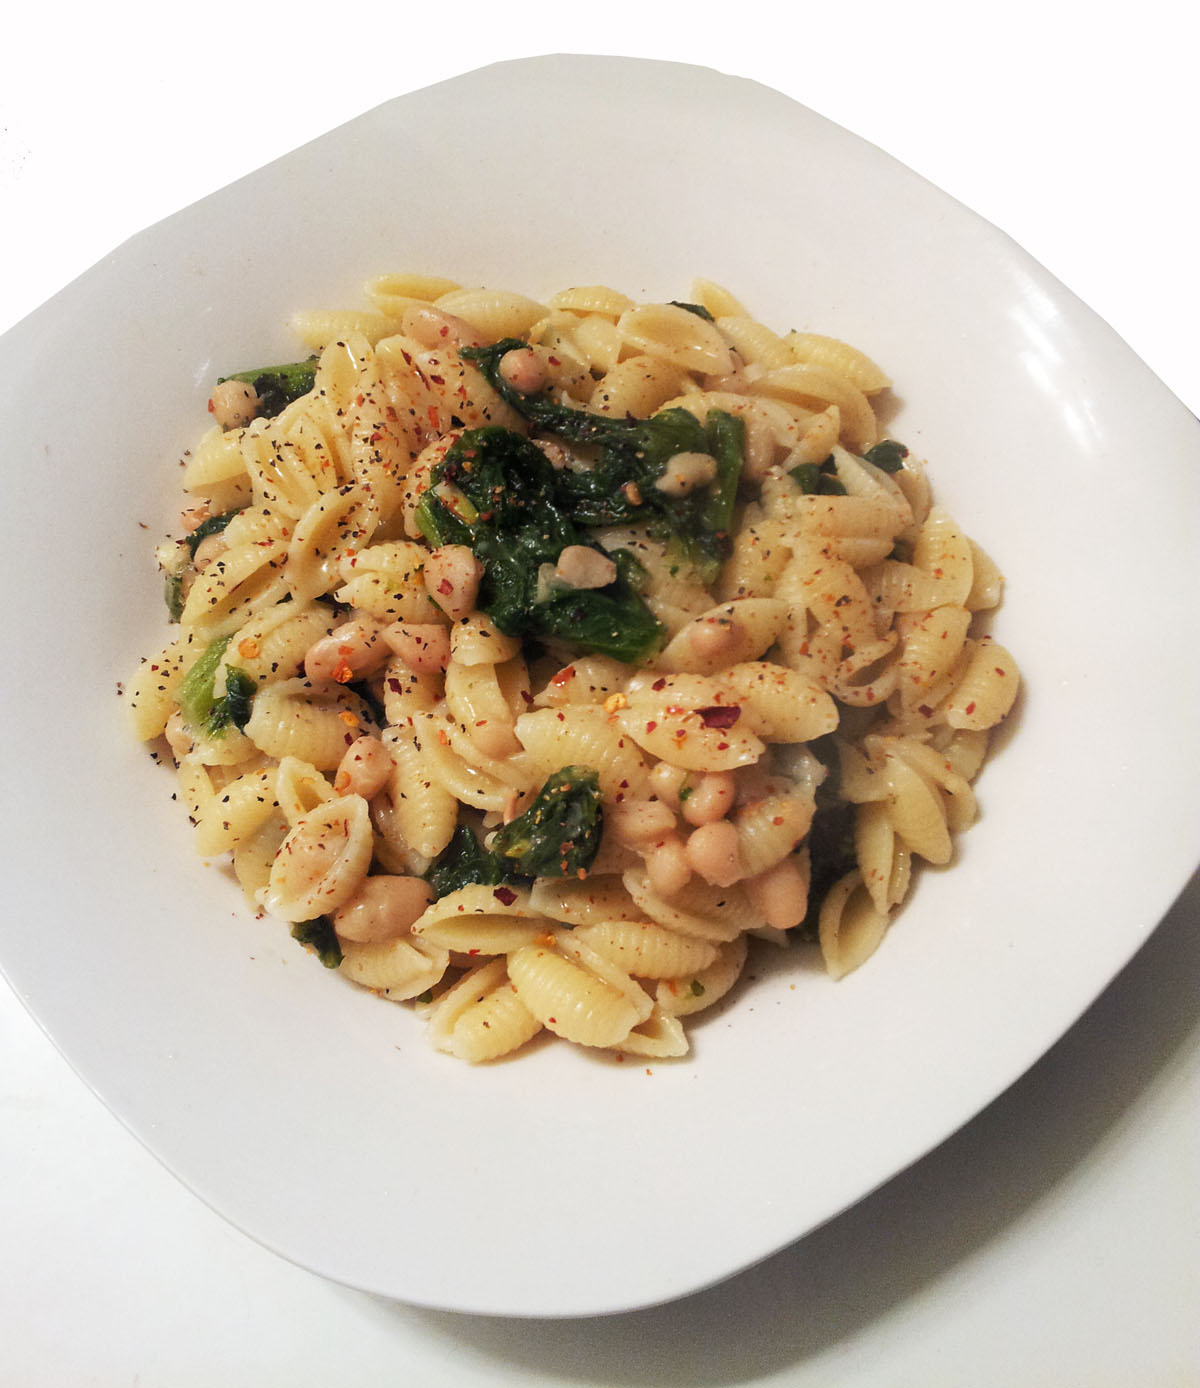 ... Hatred of Meat: Cavatelli with Mustard Greens & Creamy White Beans